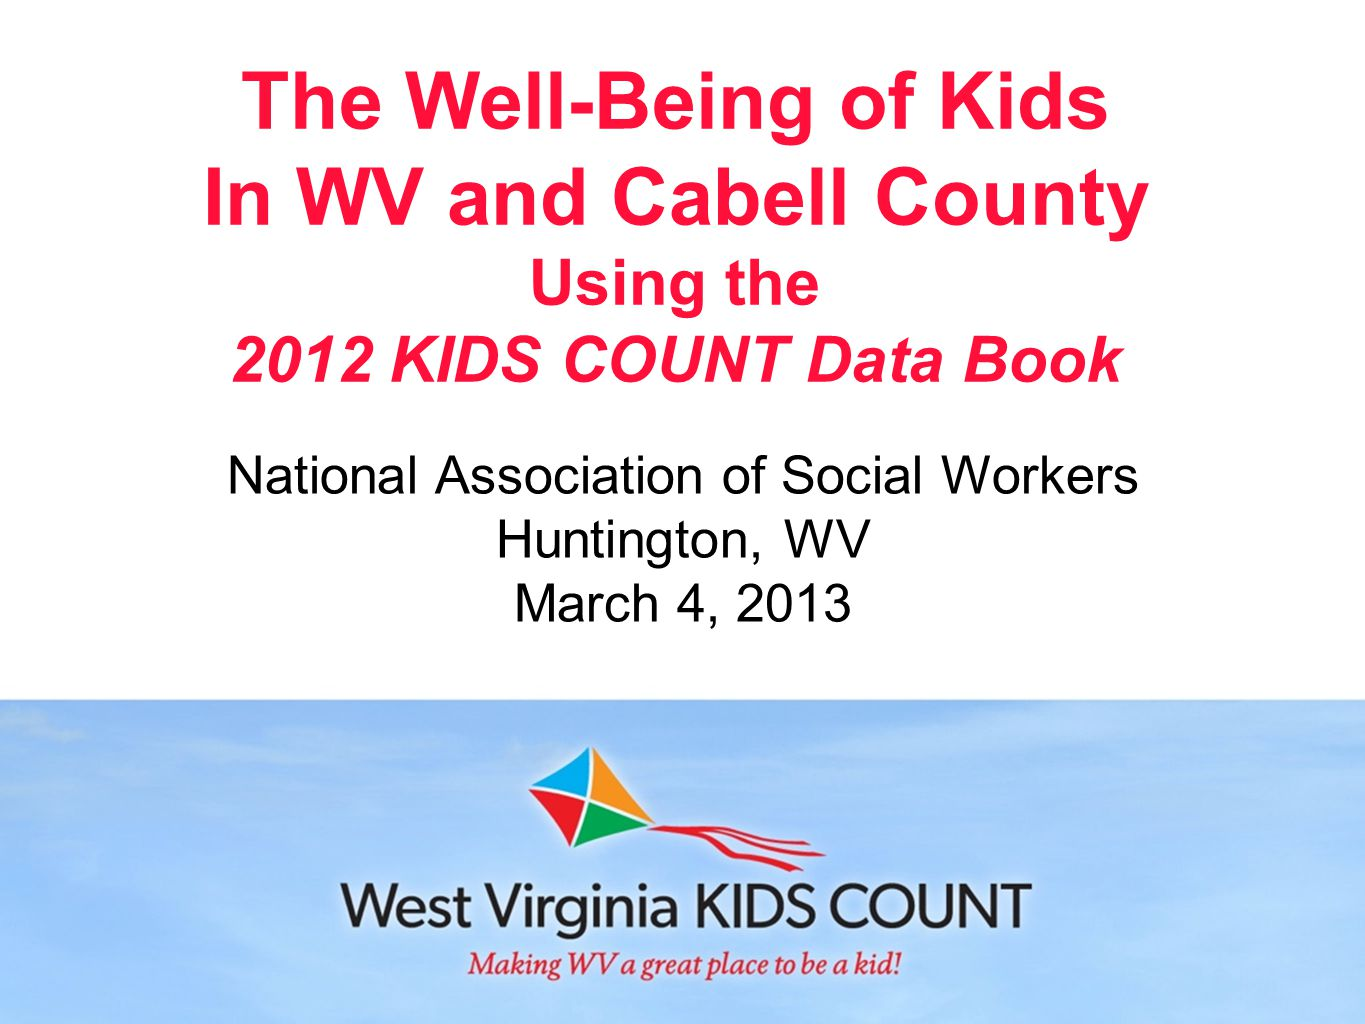 The Well-Being of Kids In WV and Cabell County Using the 2012 KIDS COUNT Data Book National Association of Social Workers Huntington, WV March 4, 2013